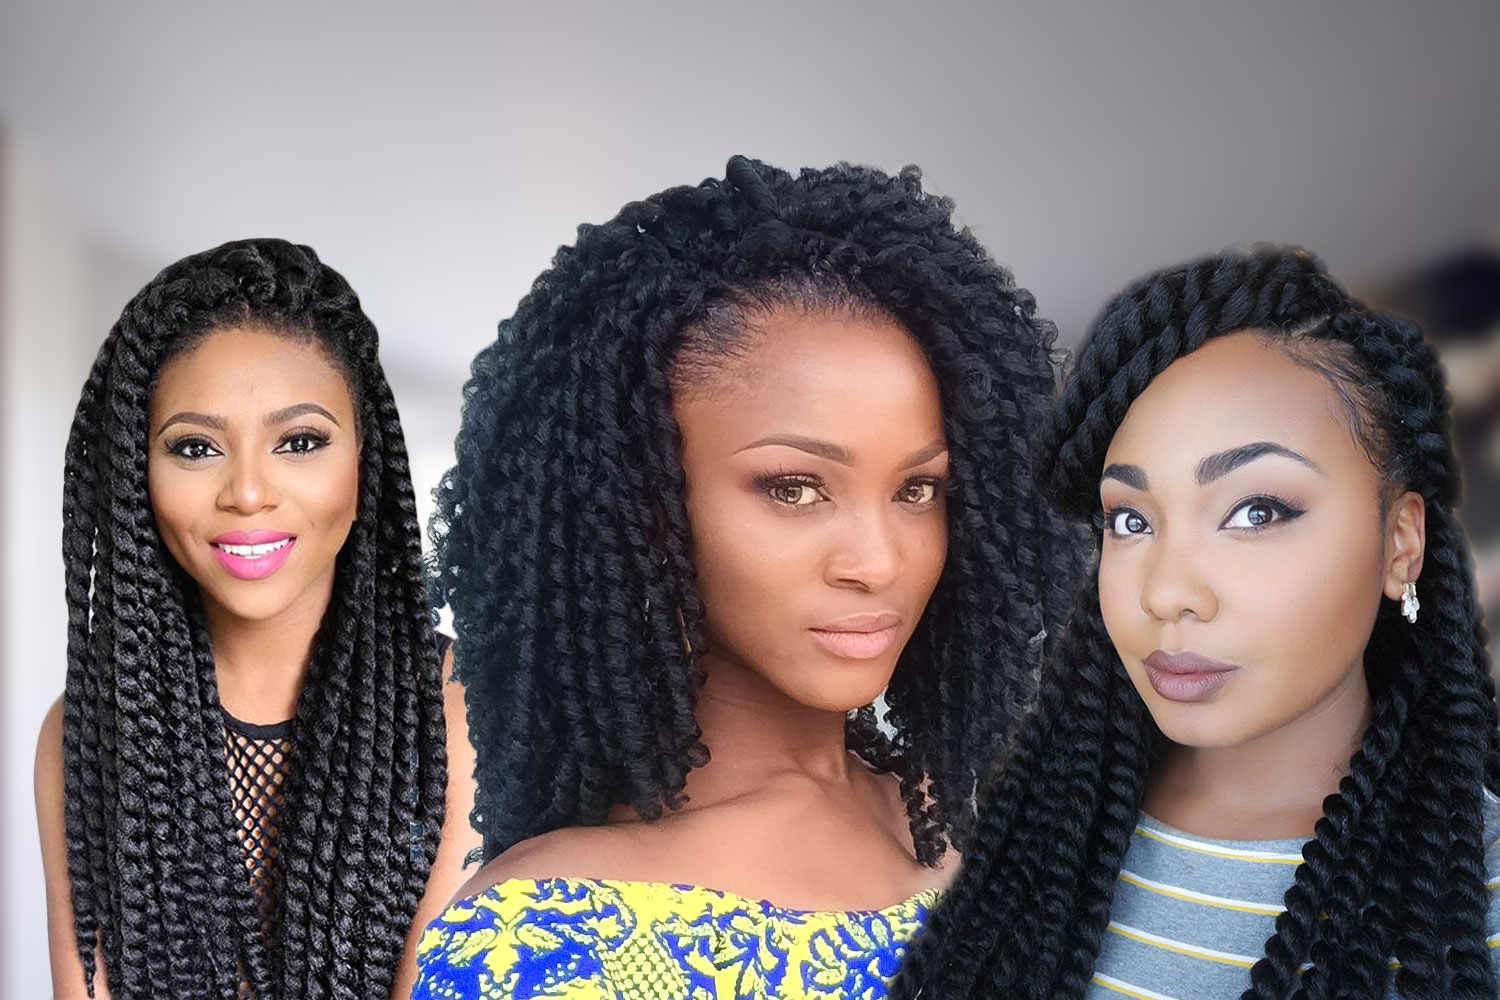 crochet braids hairstyles: curls or twists? | hairstyles, haircuts